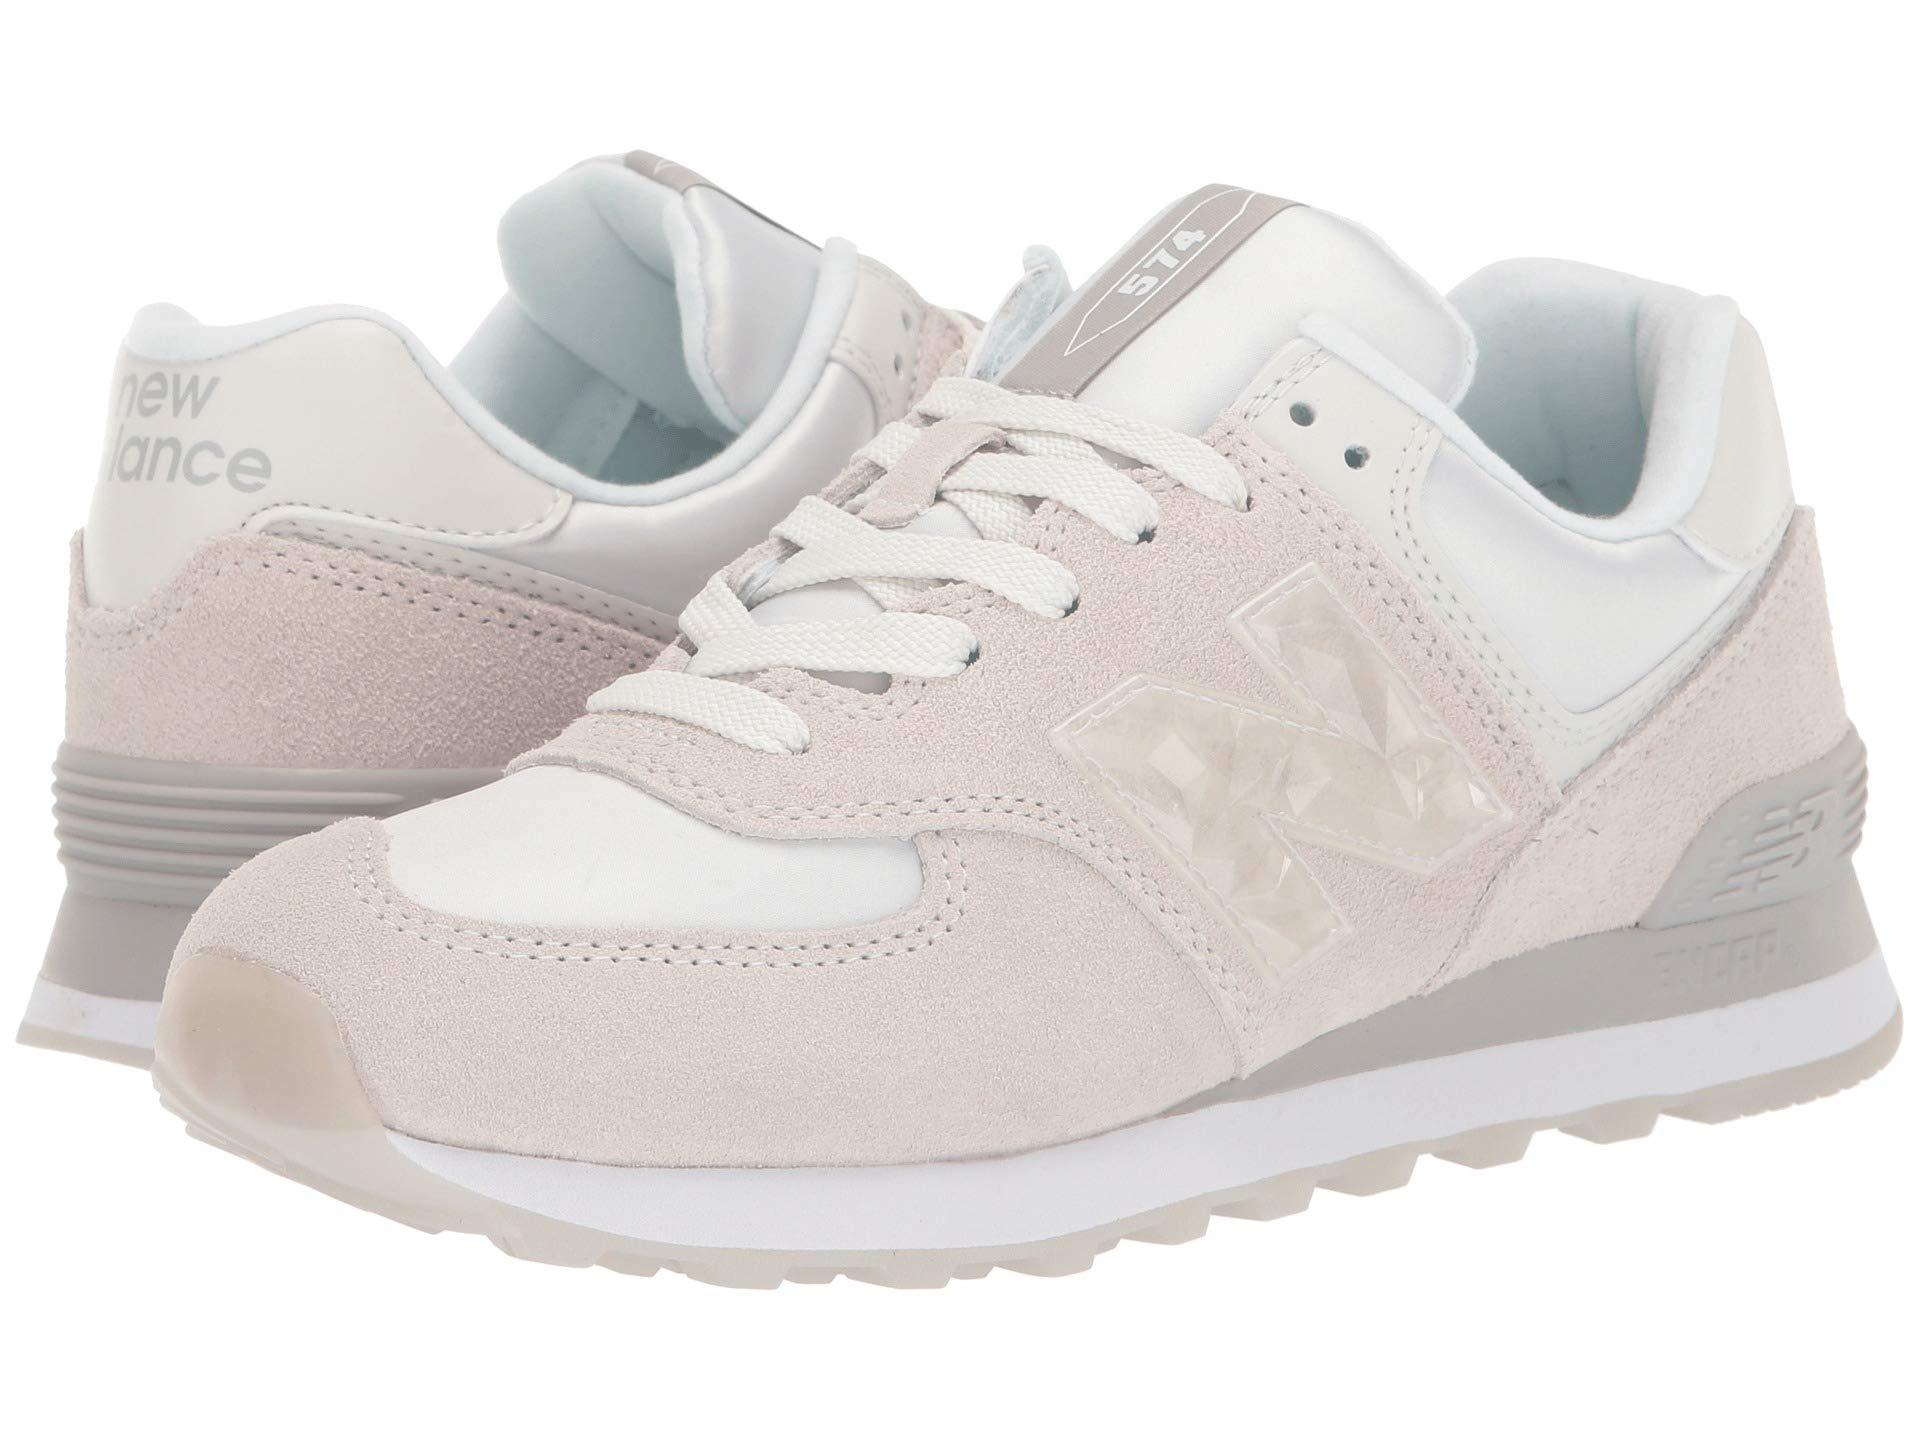 New Balance Suede Wl574v2-usa in Beige (Natural) - Lyst